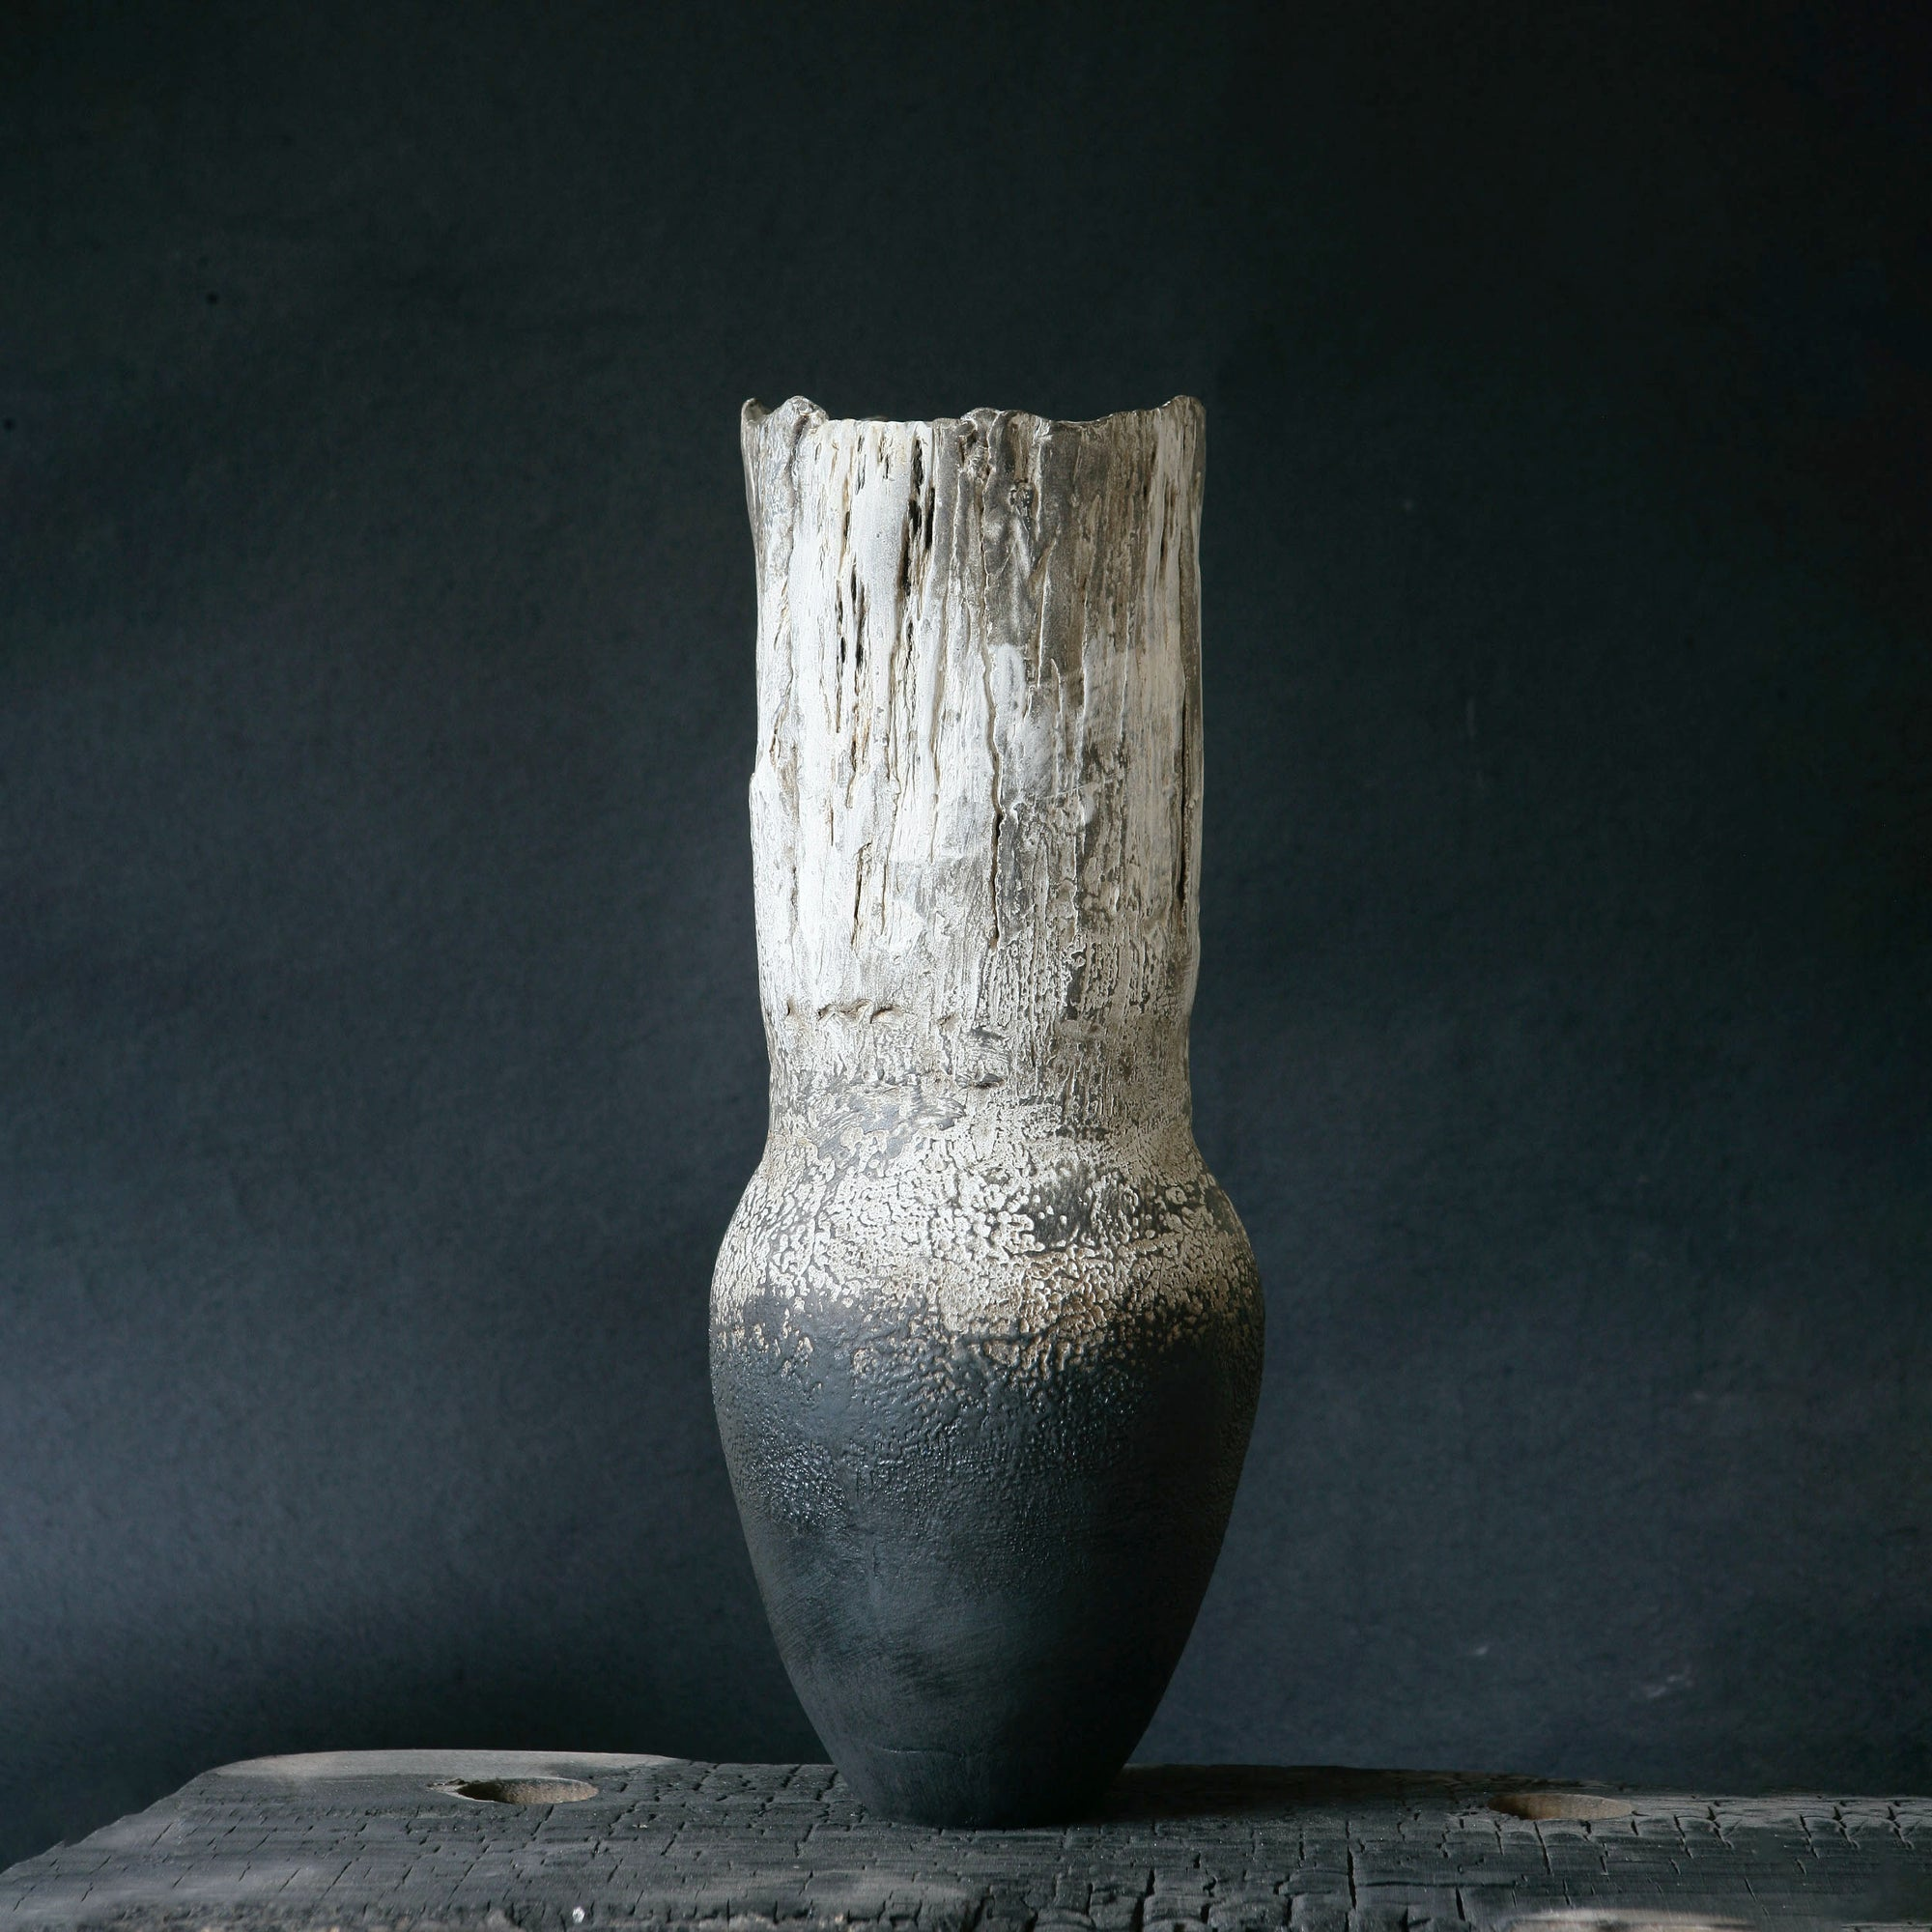 Large%20Vase,%20smoke%20white:charcoal%20with%20Karoo%20shale%20rock%20impression.jpg